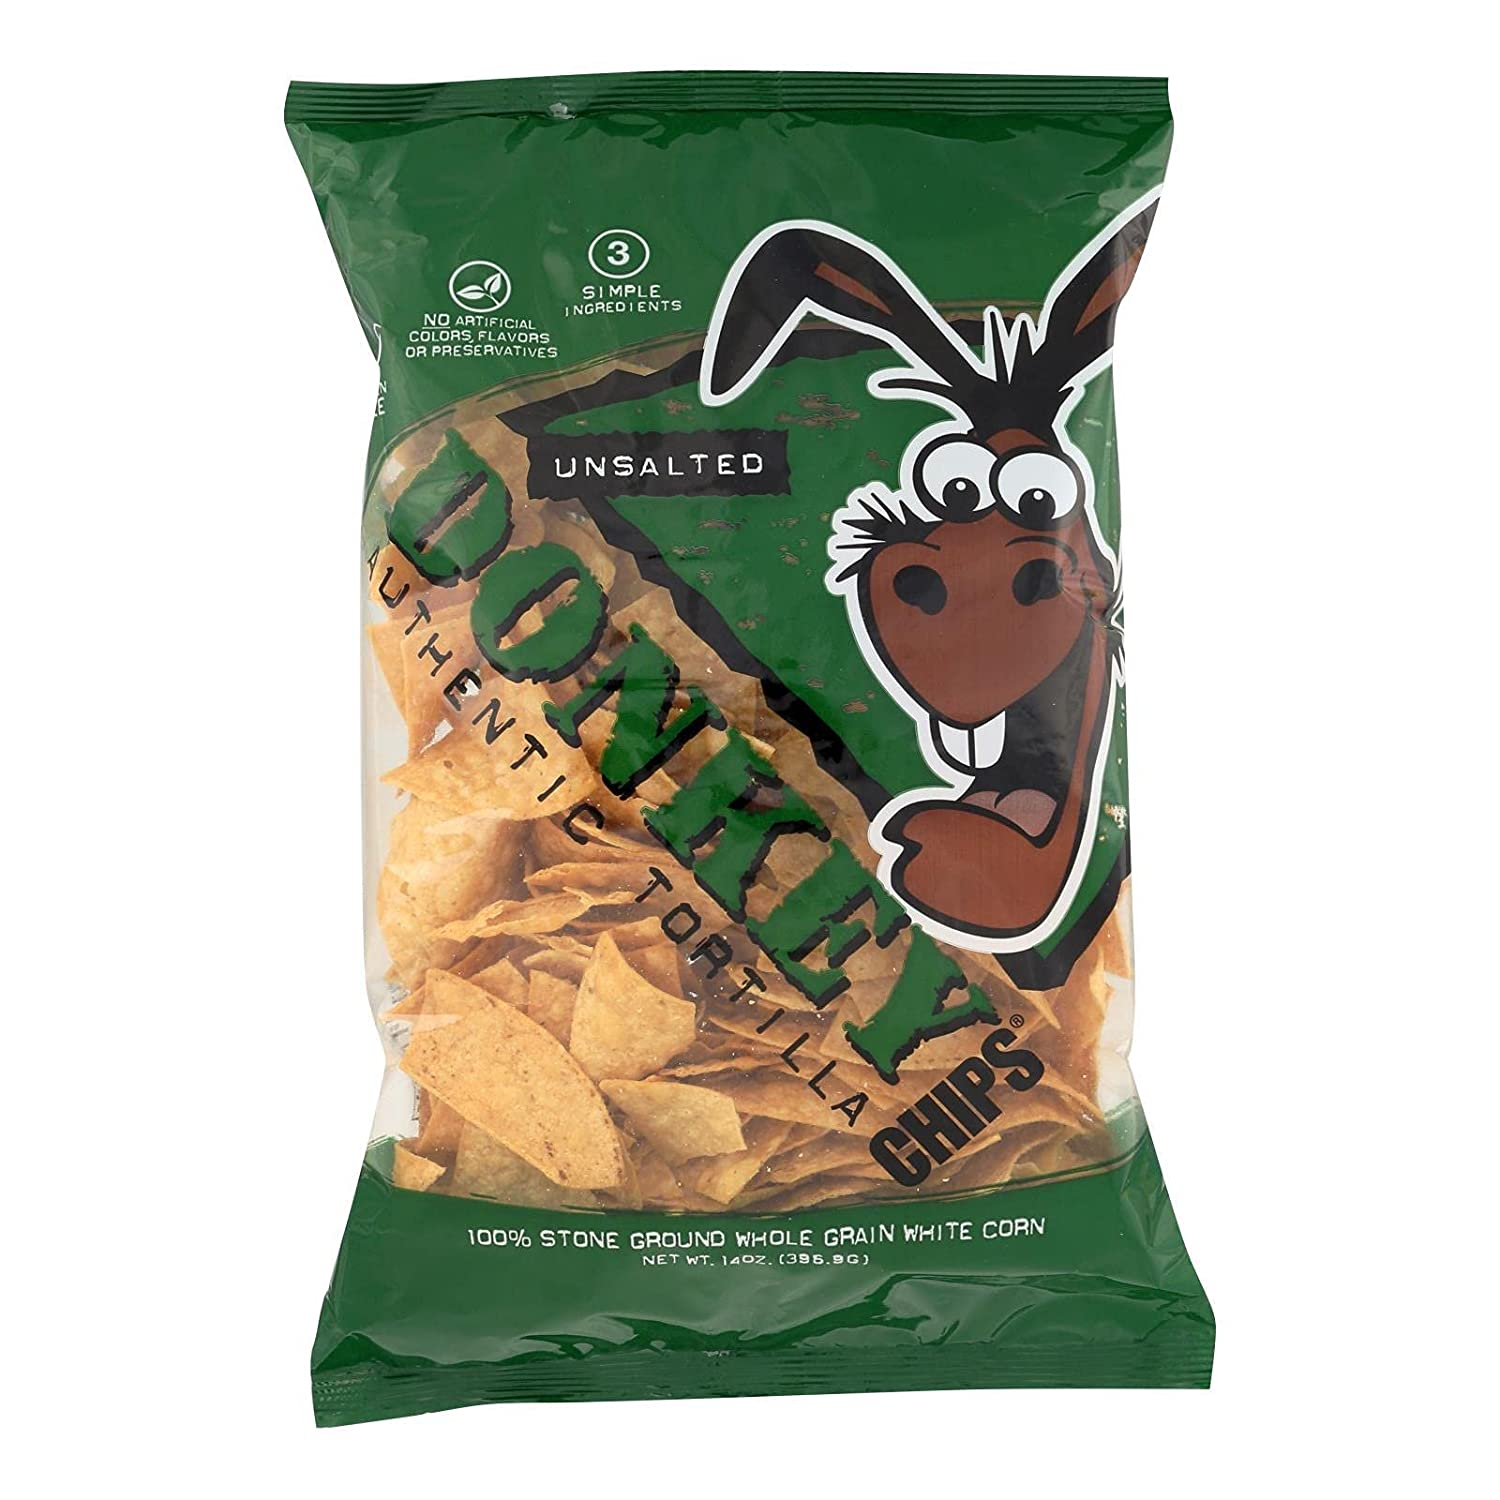 Donkey Authentic Tortilla Chips All Pack Natural Unsalted 14oz Free shipping anywhere in the Sale item nation